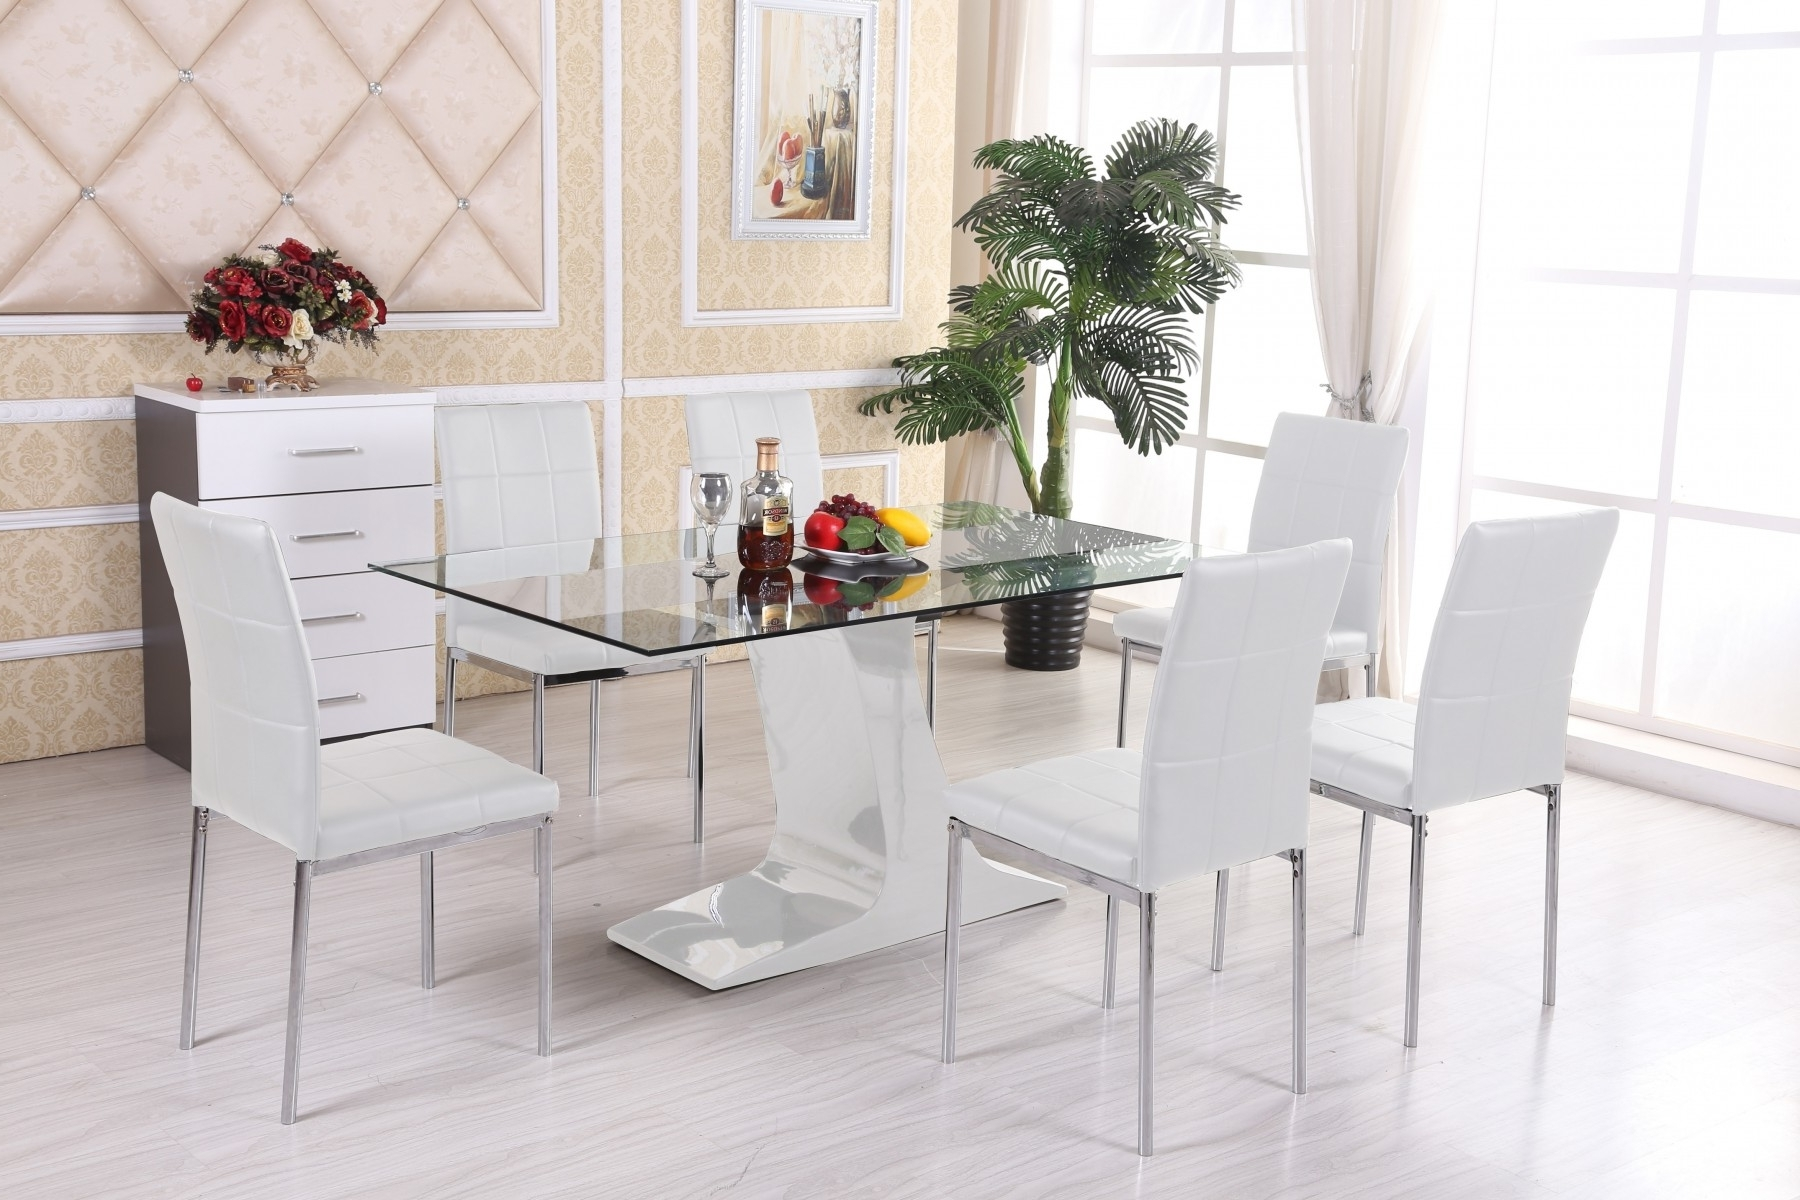 4 Optimal Choices In Glass Dining Table And Chairs – Blogbeen Within Fashionable Glass Extendable Dining Tables And 6 Chairs (Gallery 21 of 25)